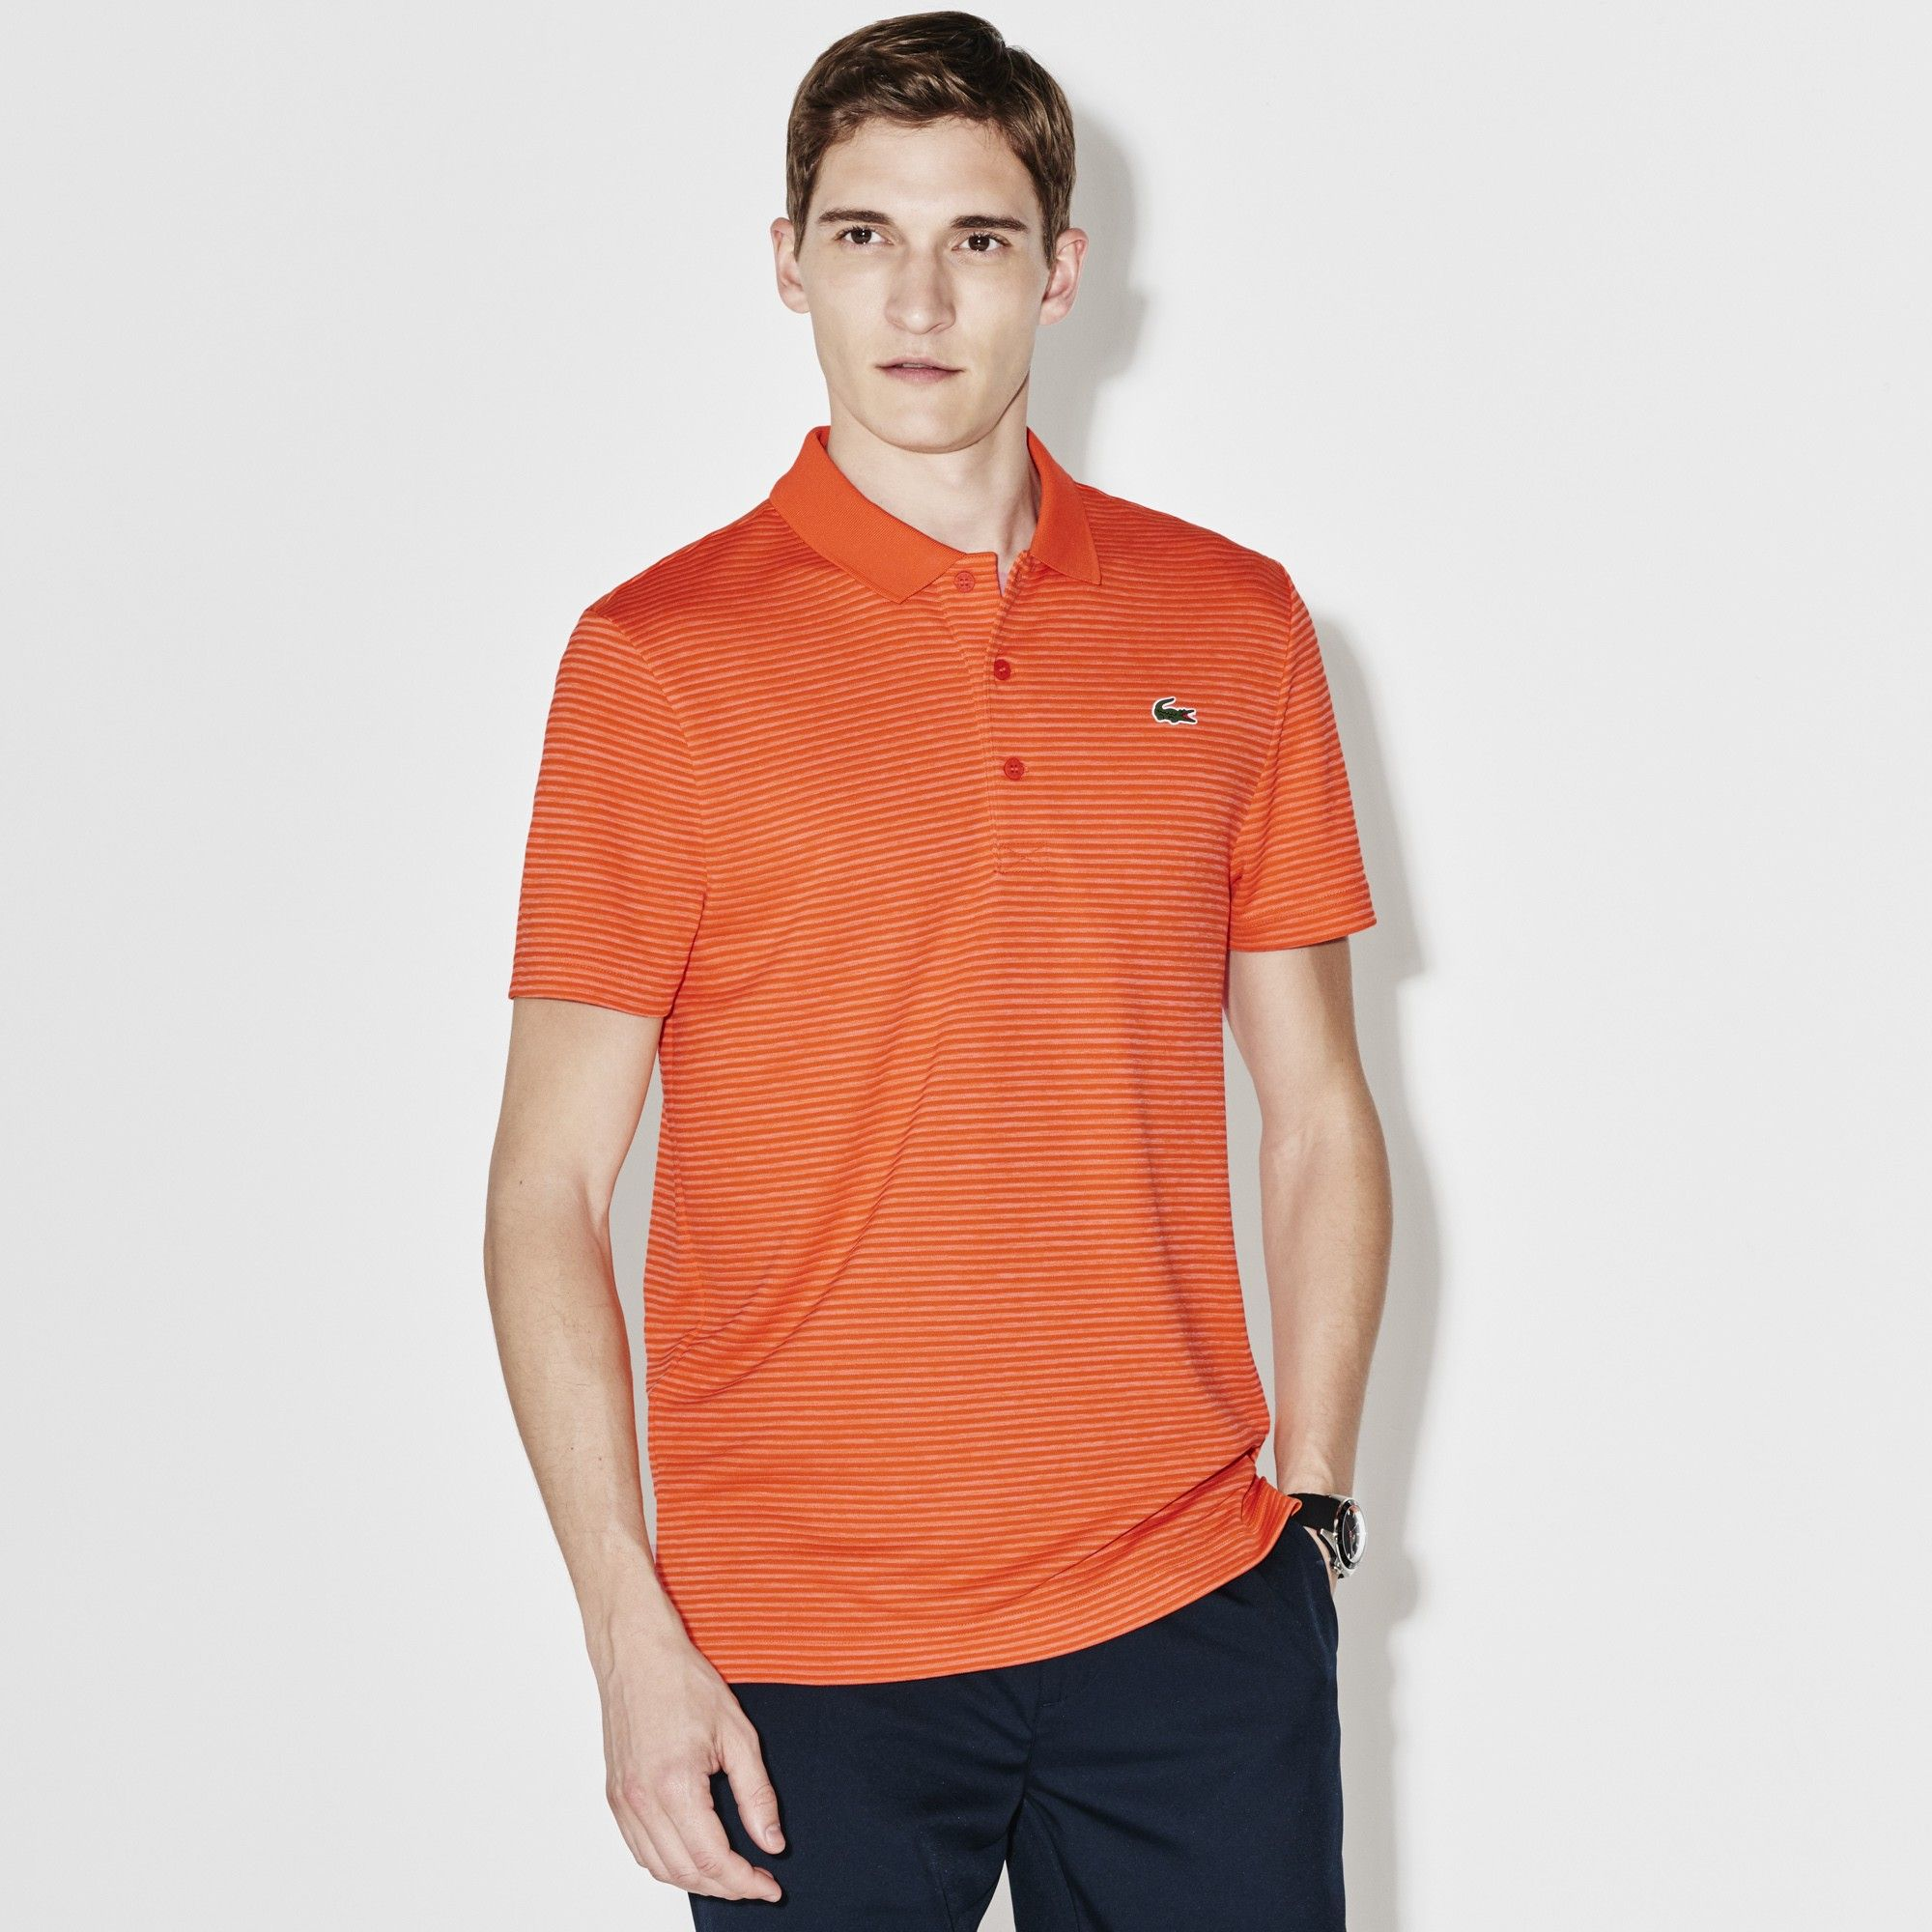 8769f47a47 LACOSTE Men's SPORT Golf Striped Tech Jersey Polo - mexico red ...